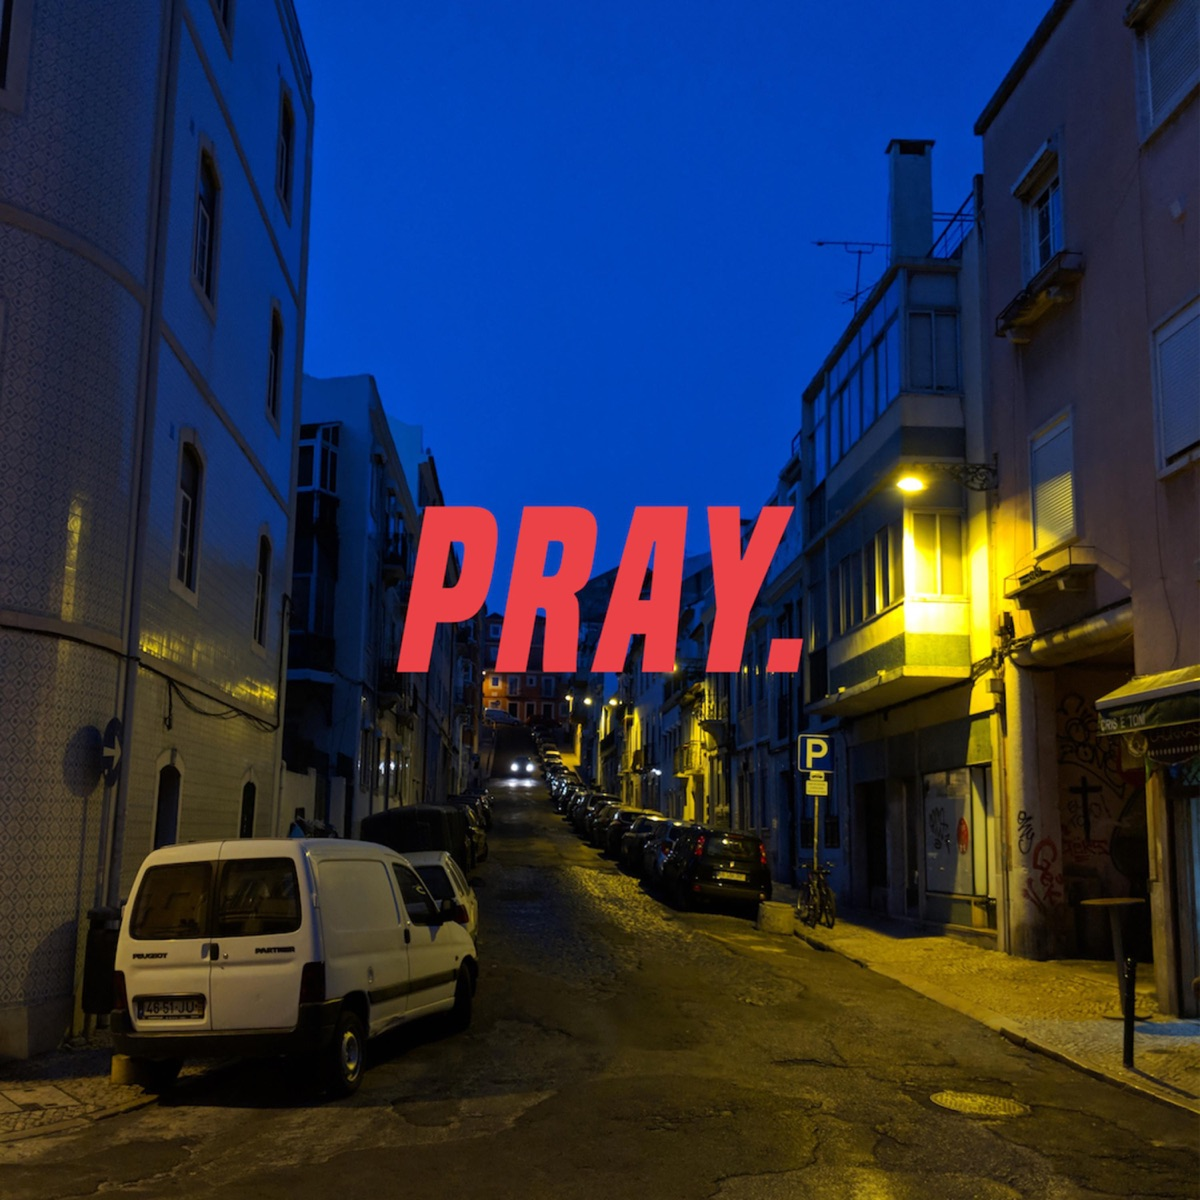 Pray feat Noble - Single Sainttt CD cover